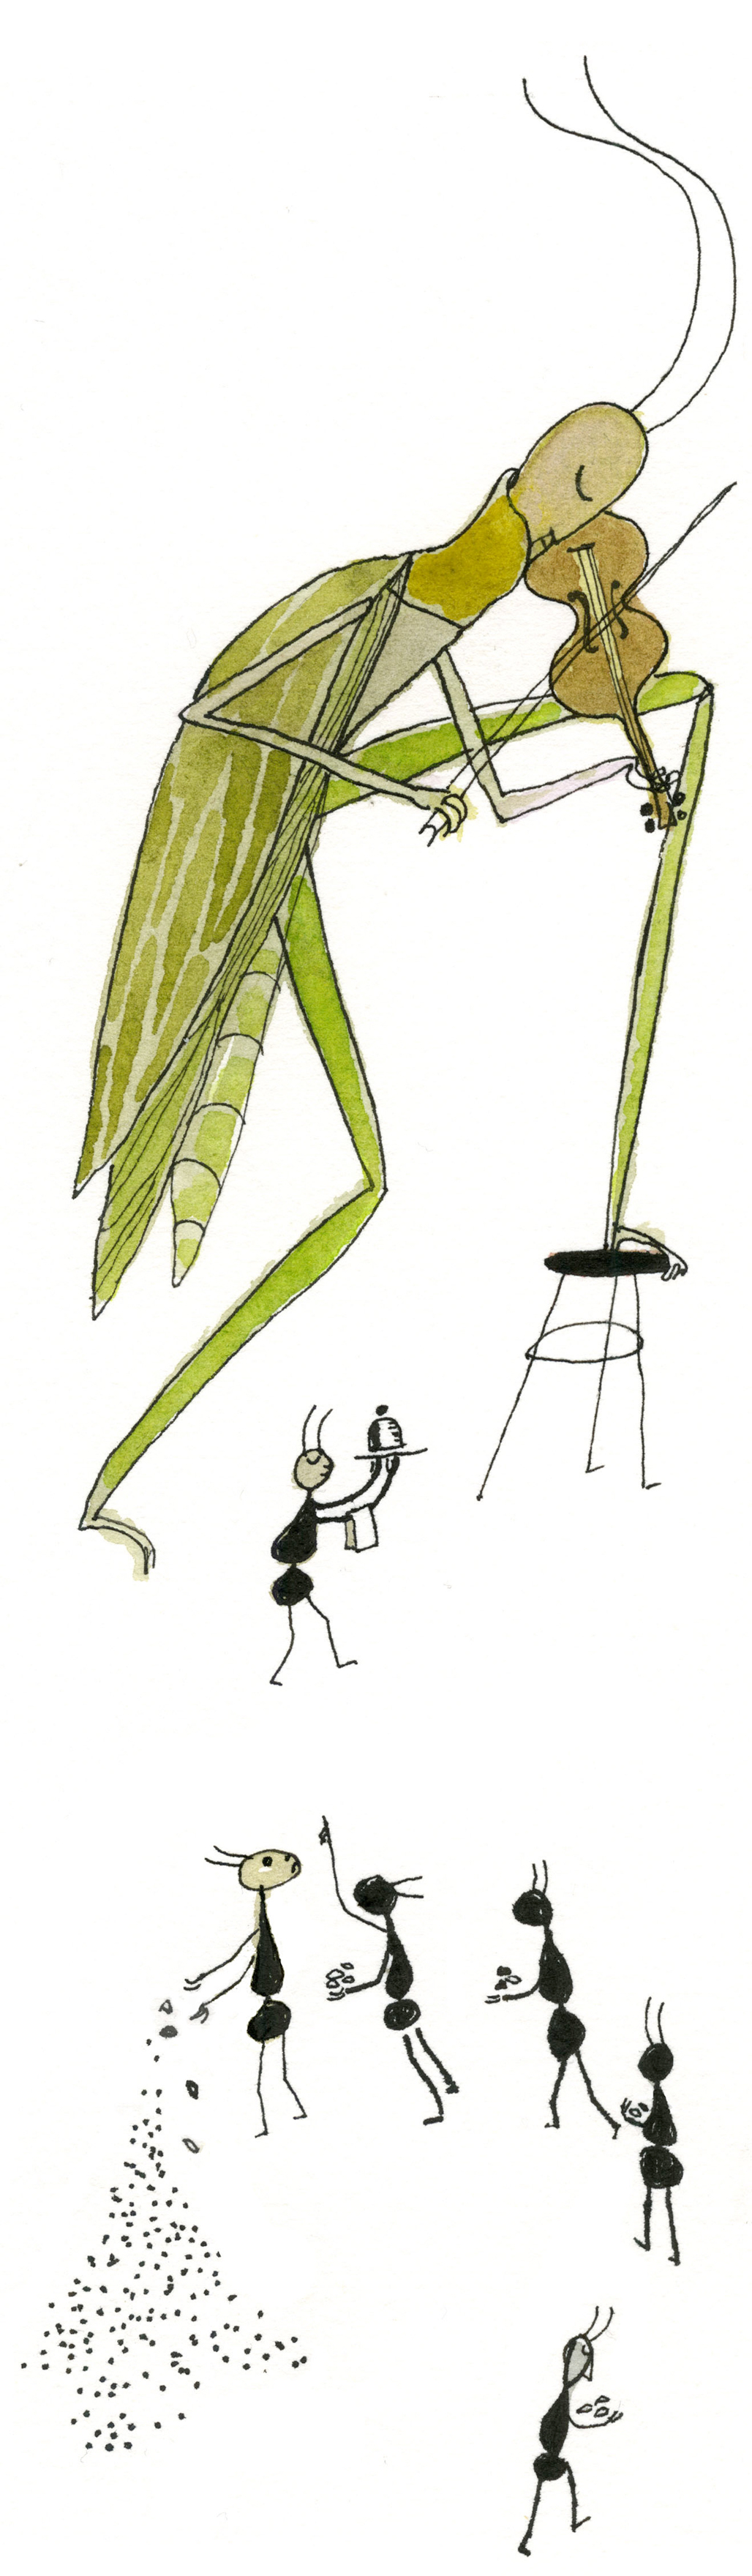 Illustration of the Grasshopper and the Ants